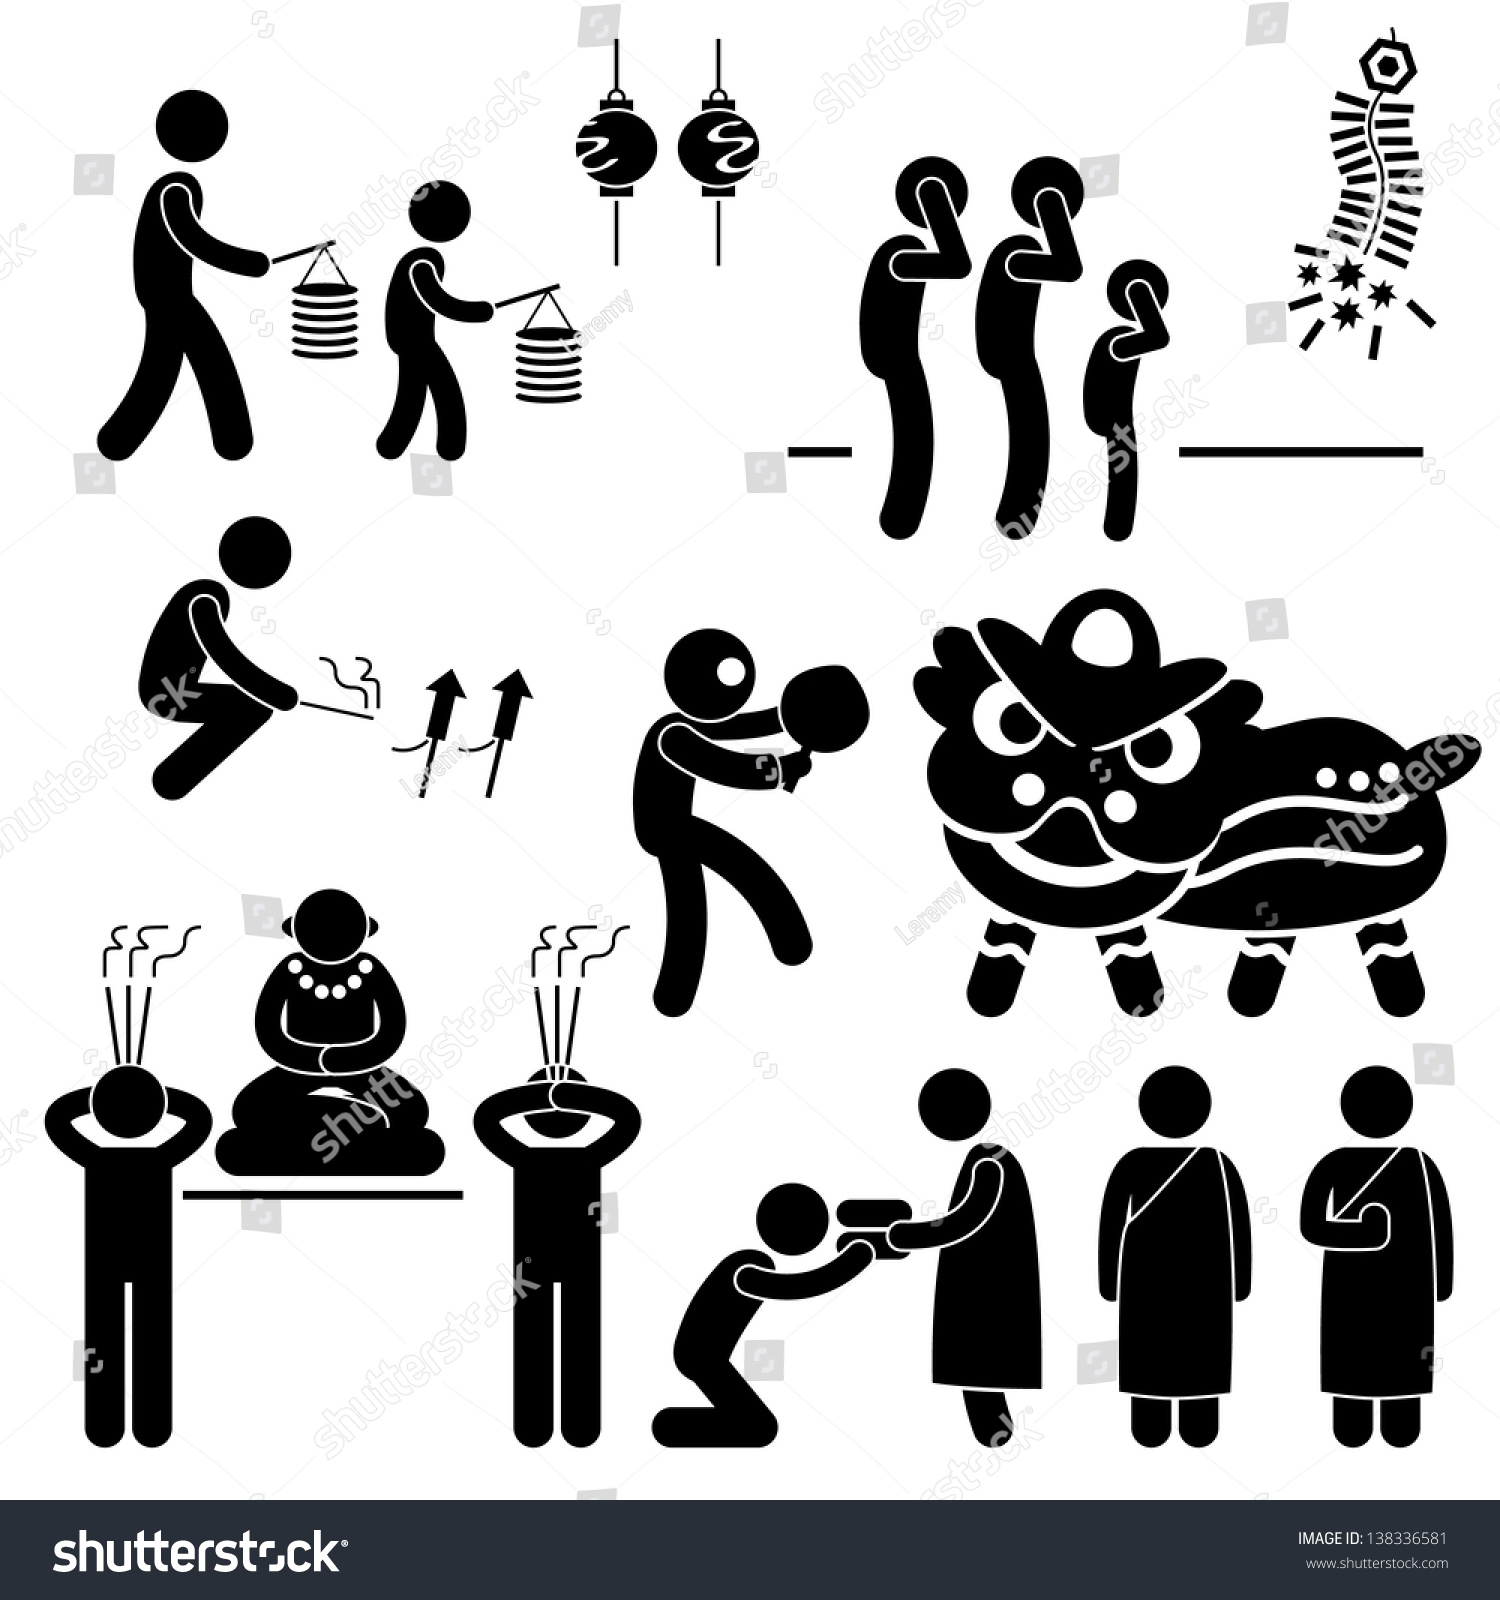 Chinese asian china religion culture tradition stock illustration chinese asian china religion culture tradition stick figure pictogram icon biocorpaavc